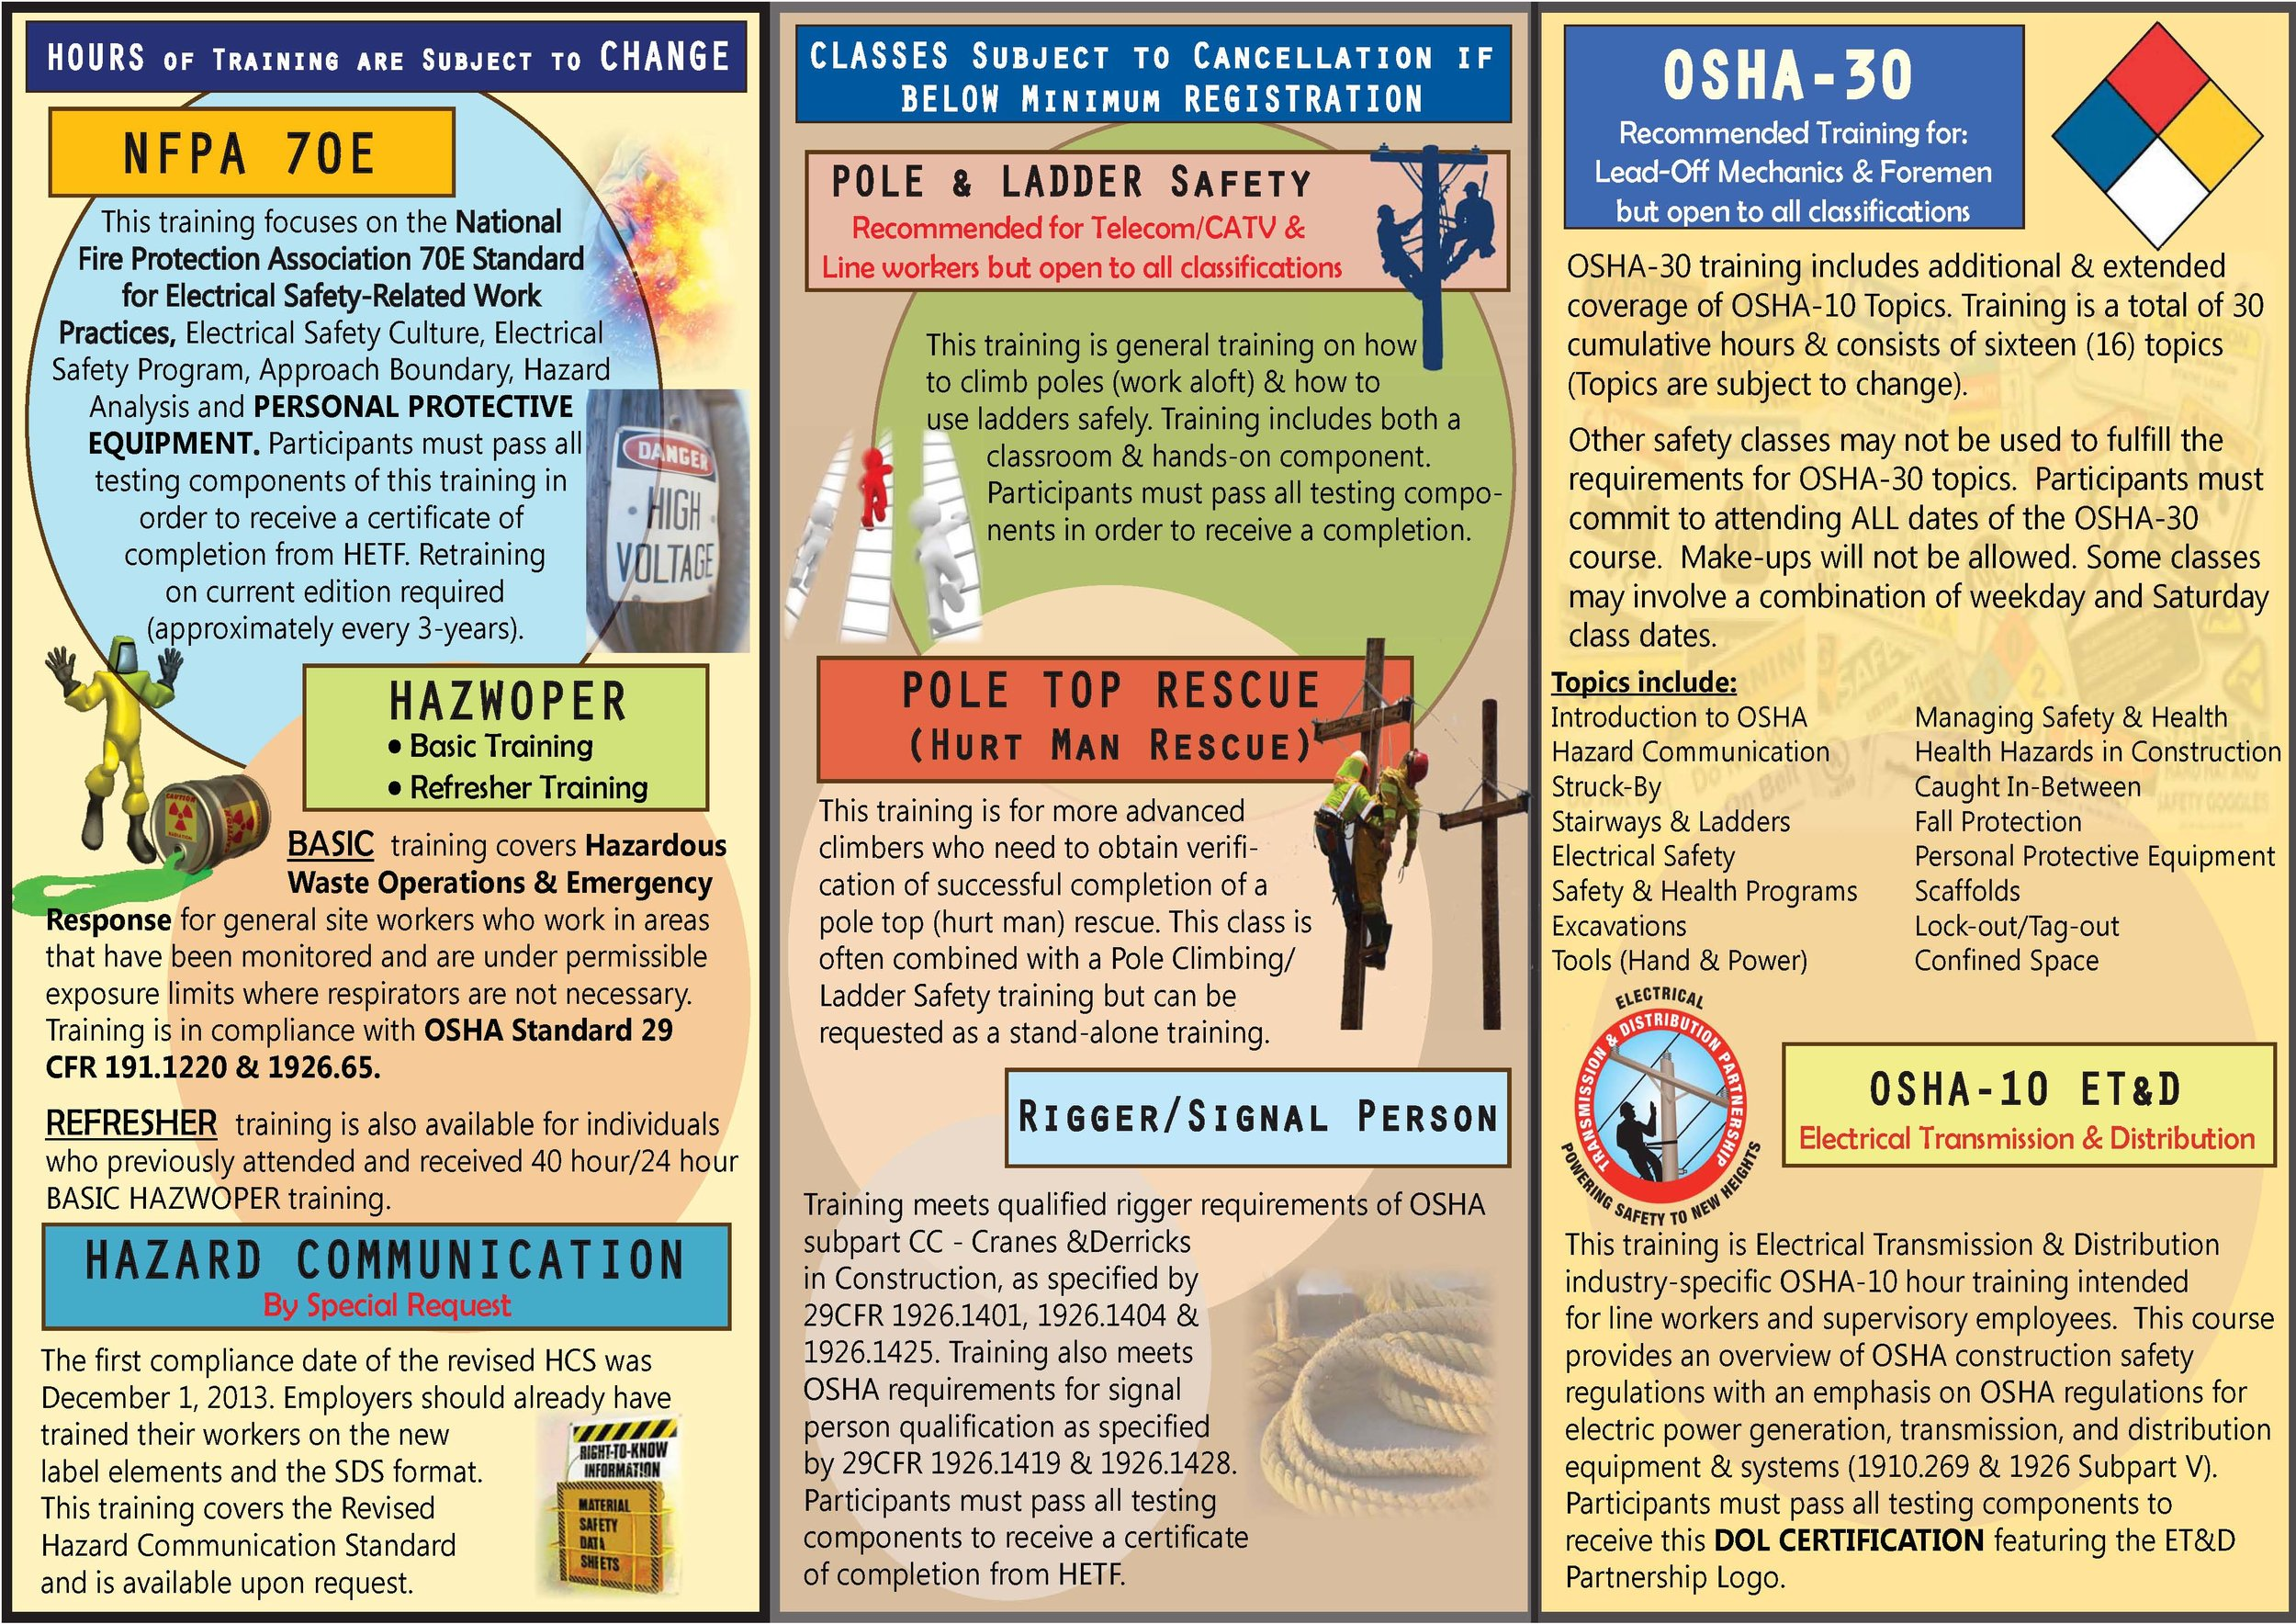 SAFETY+CLASS+BROCHURE+PAGE+1++2+11-04-14+EDIT+-+Copy_Page_2.jpg